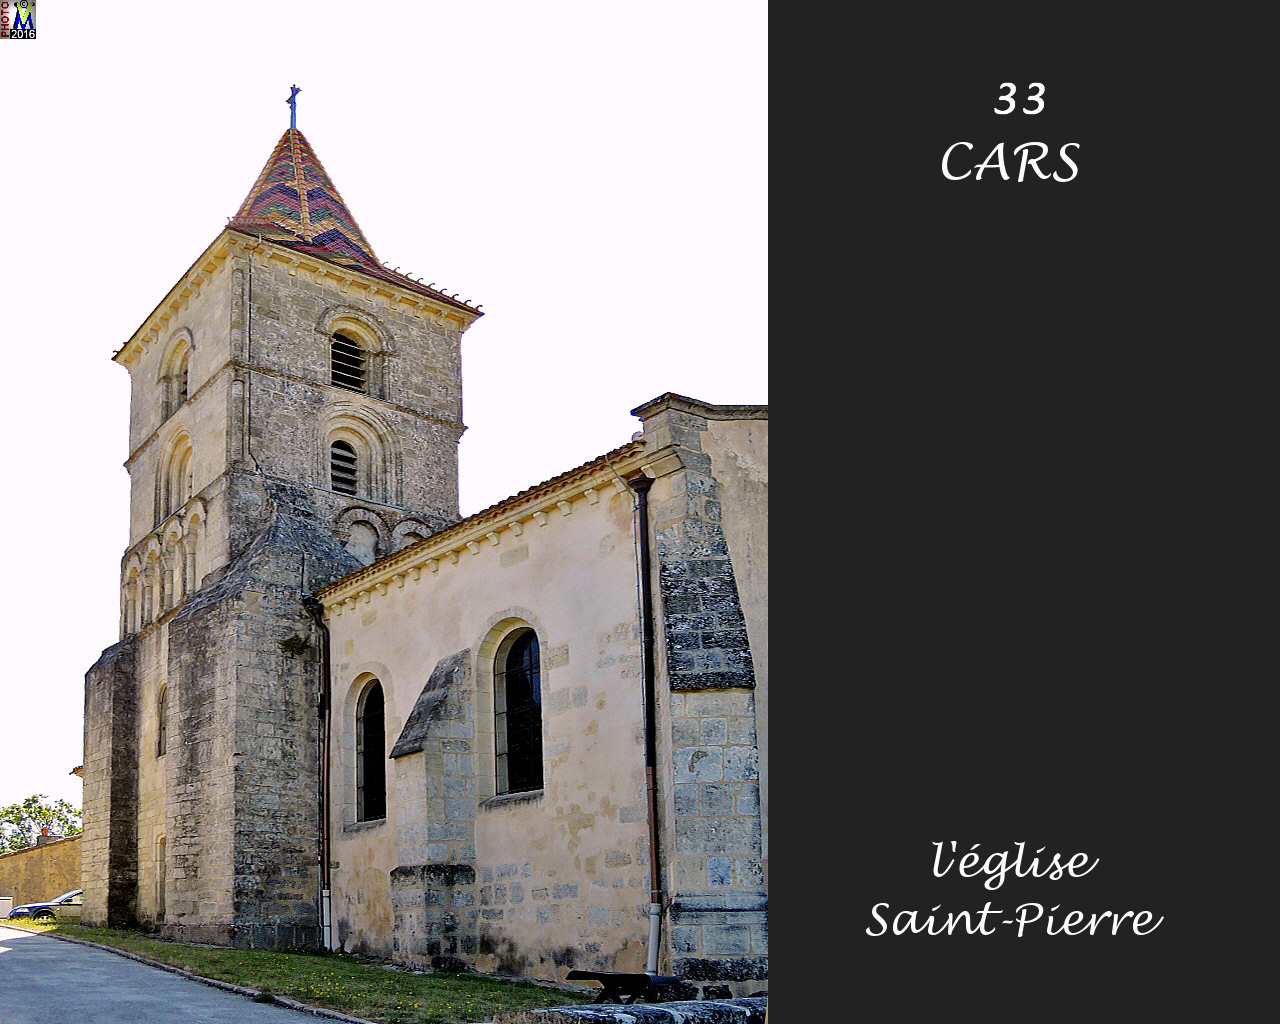 33CARS_eglise_1004.jpg